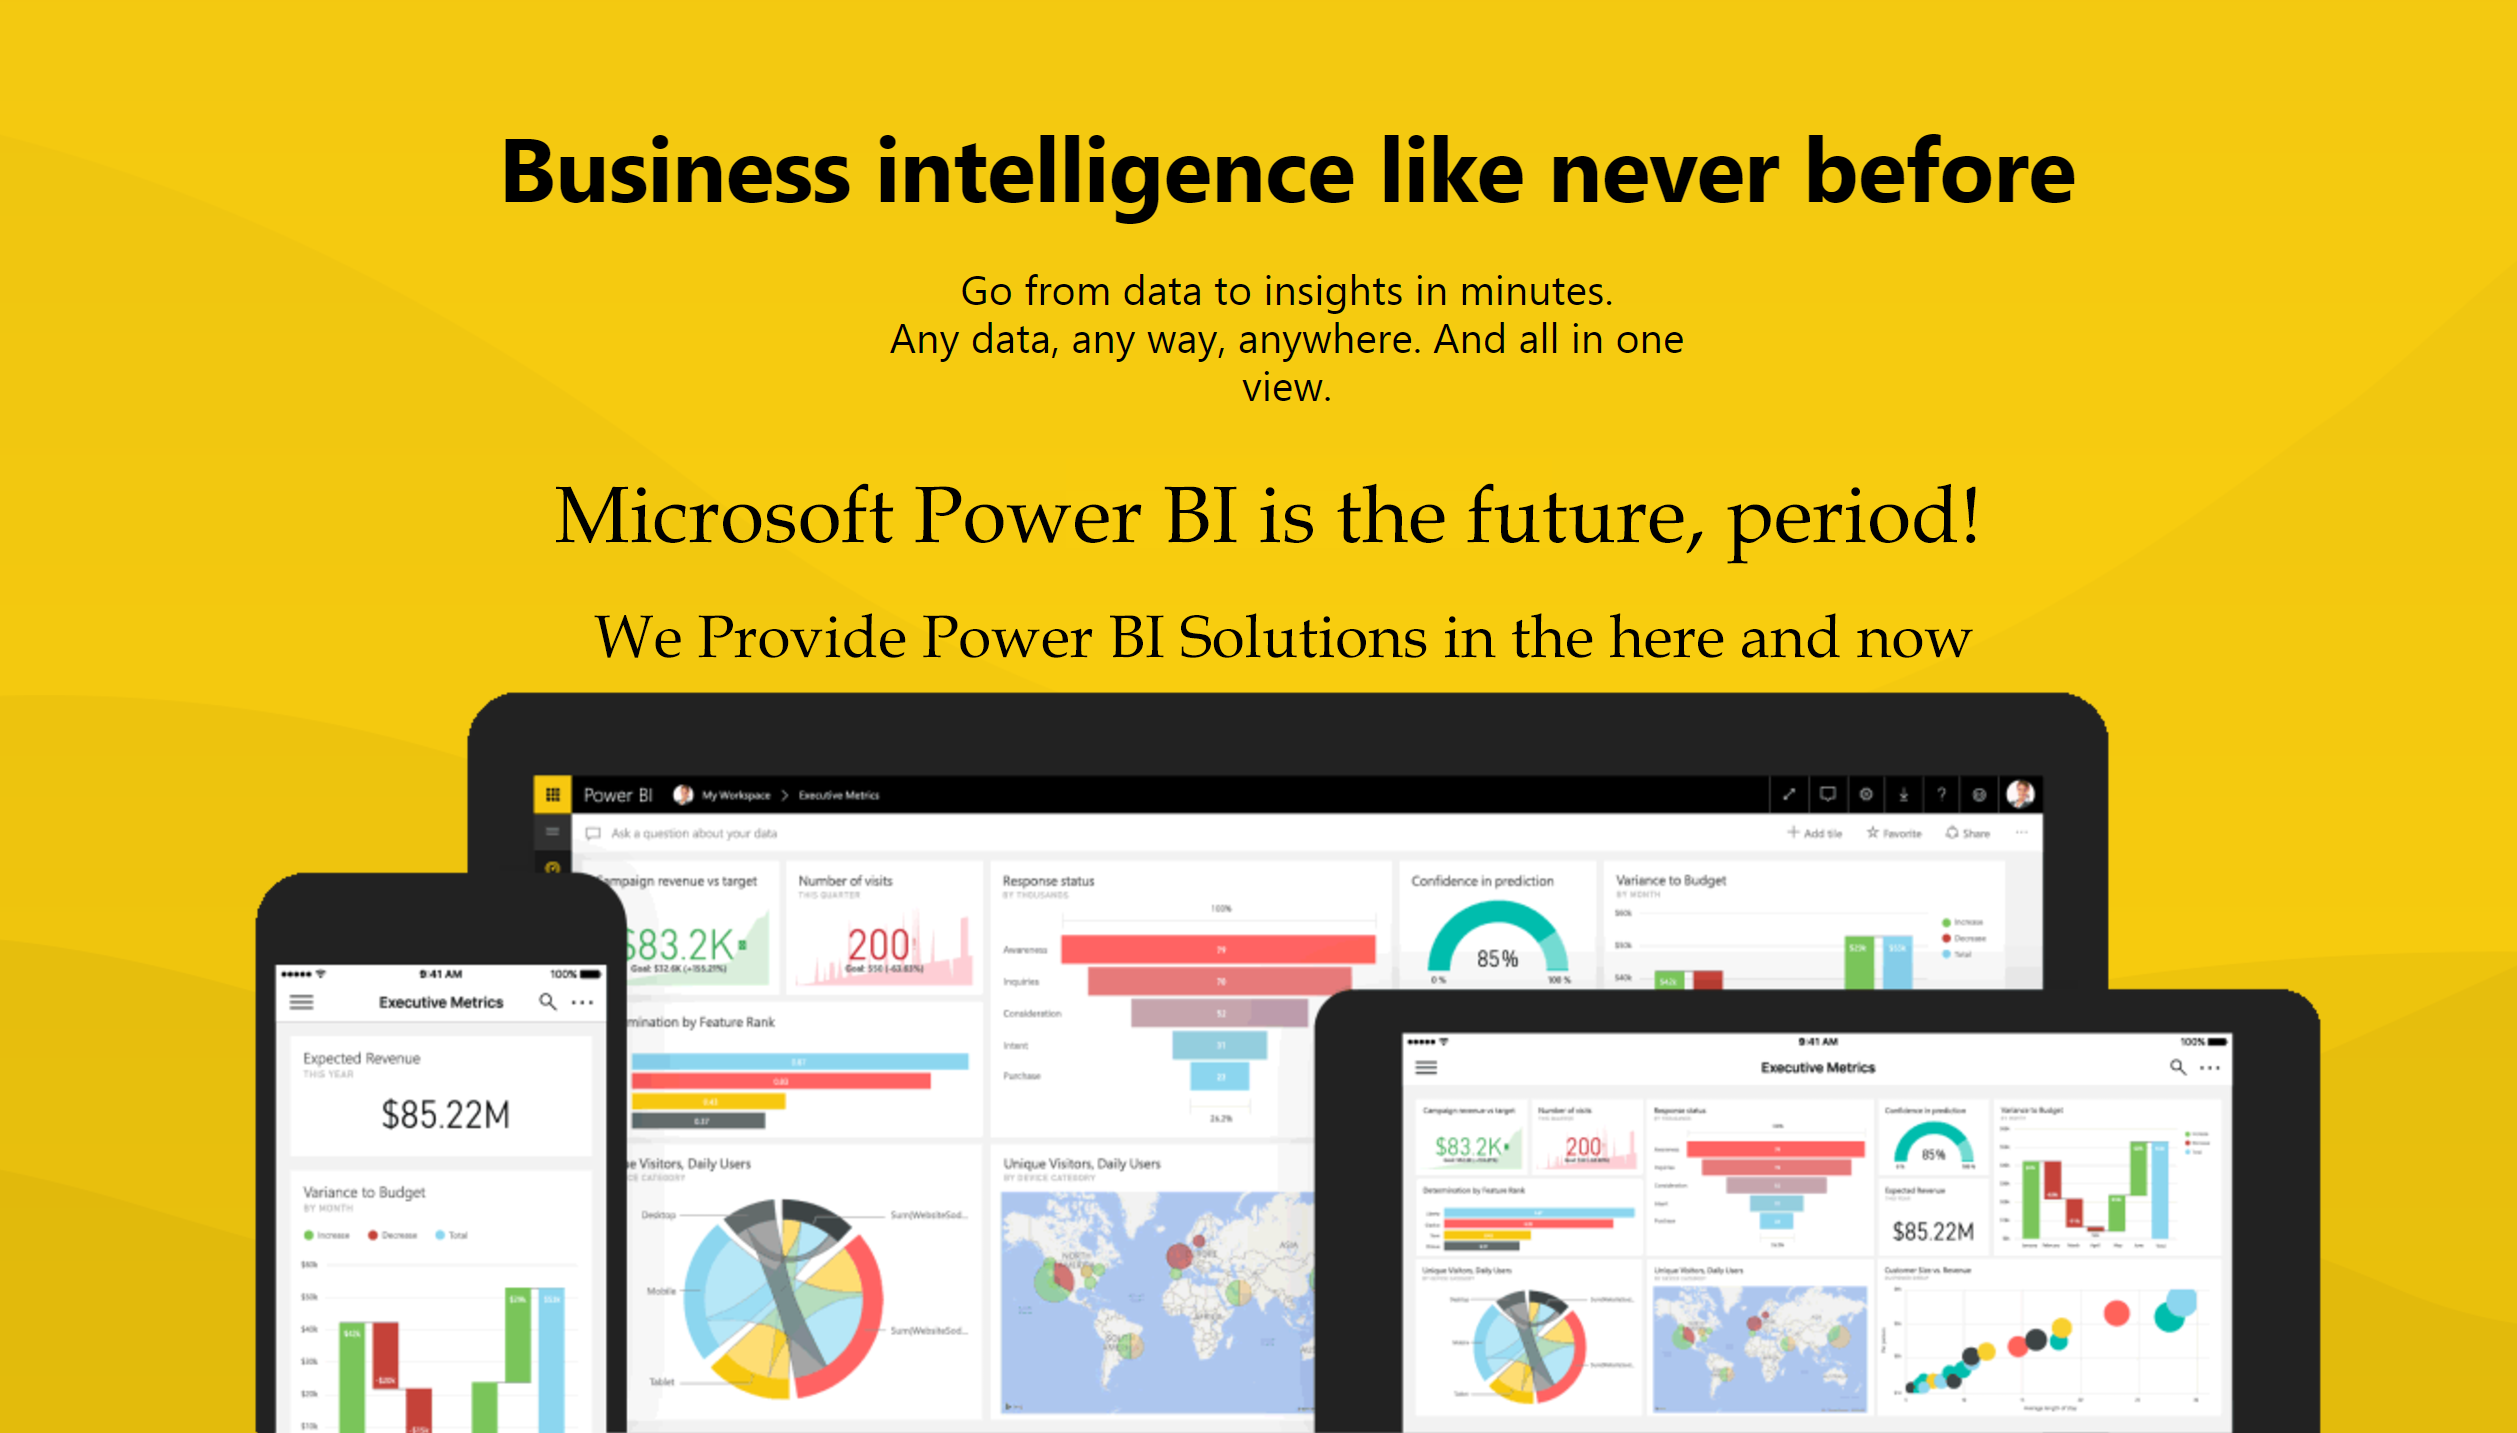 Microsoft Power BI Makes Your Data Accessible